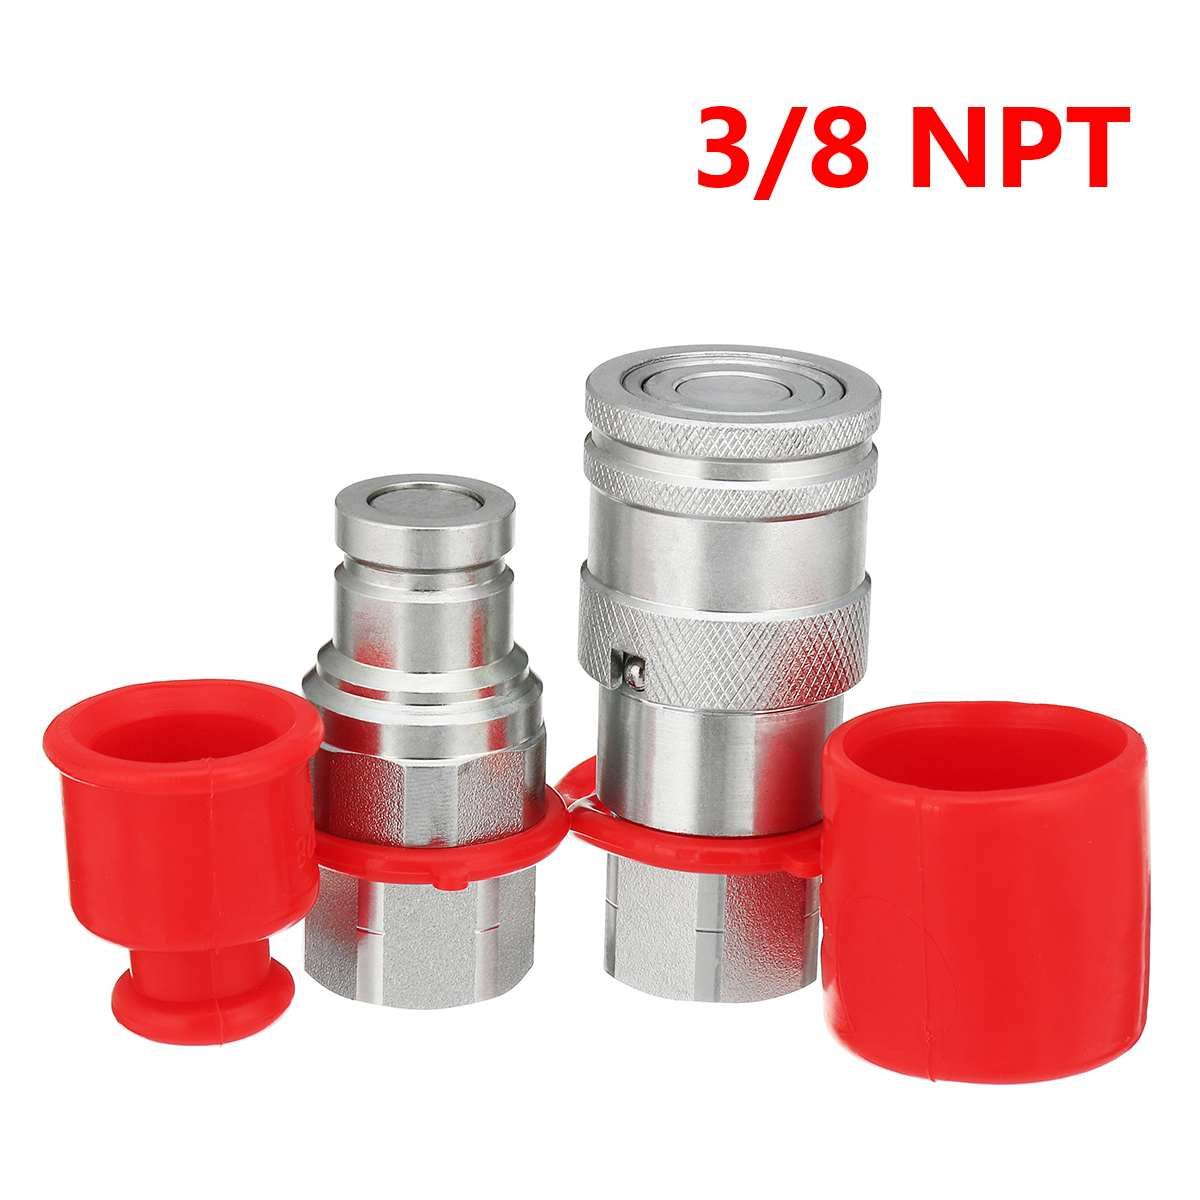 3/8 Inch NPT Face Hydraulic Male / Female Quick Connect Adapter Coupler Coupling Set for ISO16028 with PVC Protective Cover 25 32 female threaded pneumatic quick connect coupling